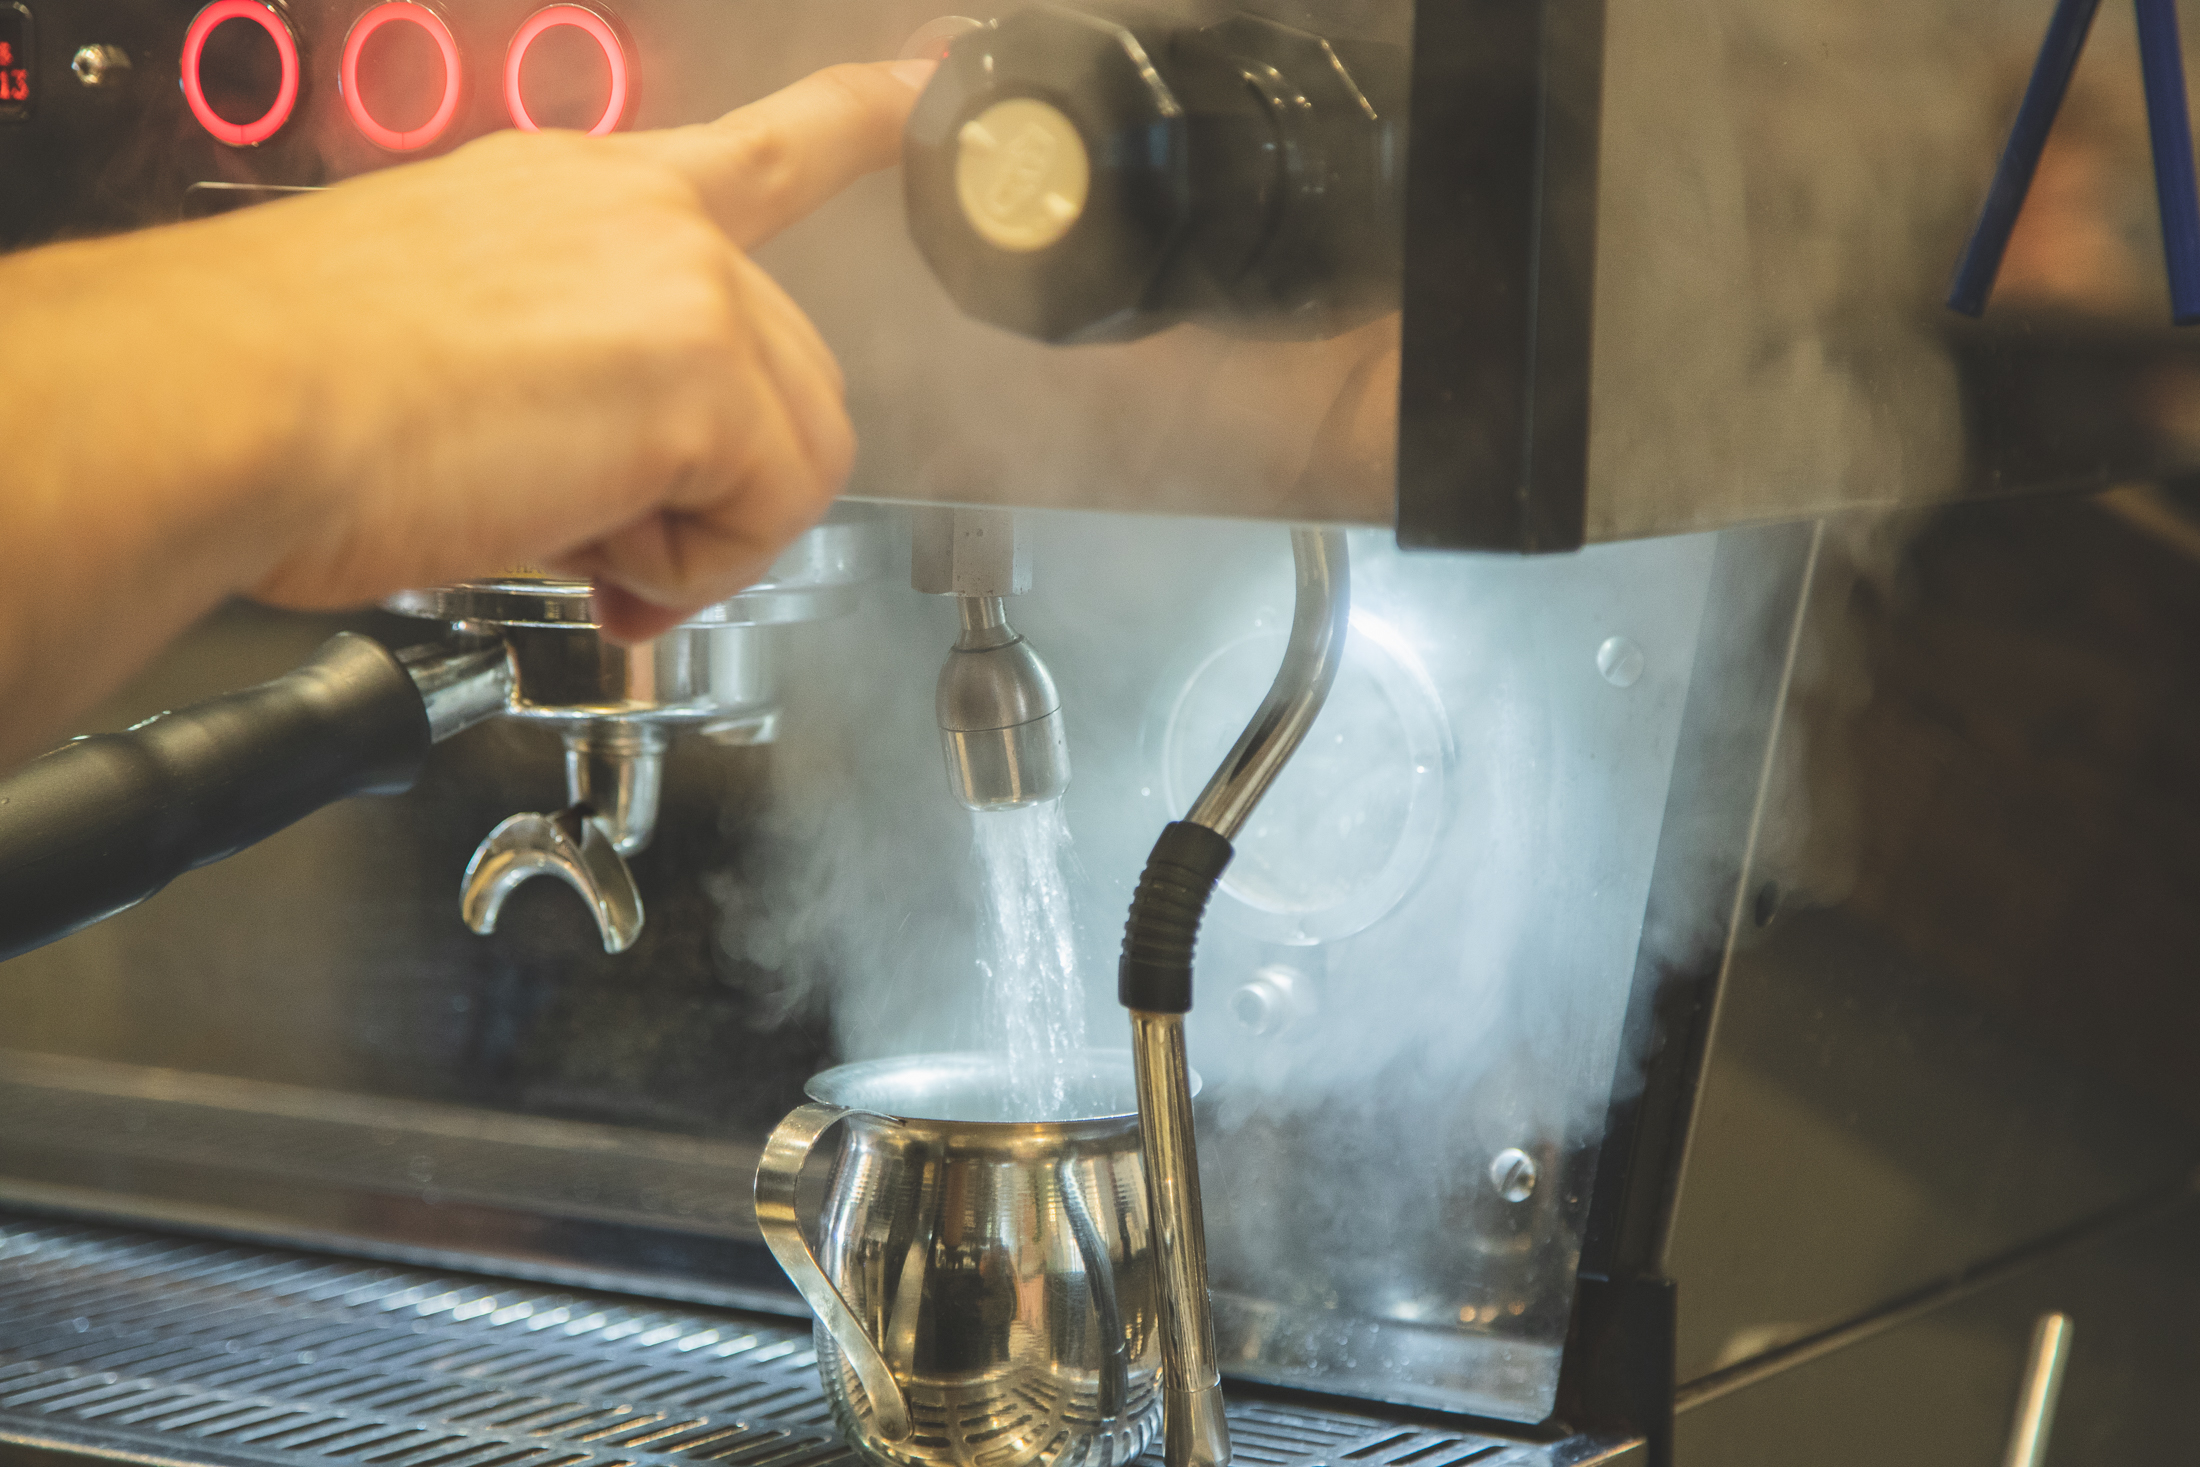 Water coming from a hot water tap on a La Marzocco Espresso Machine.